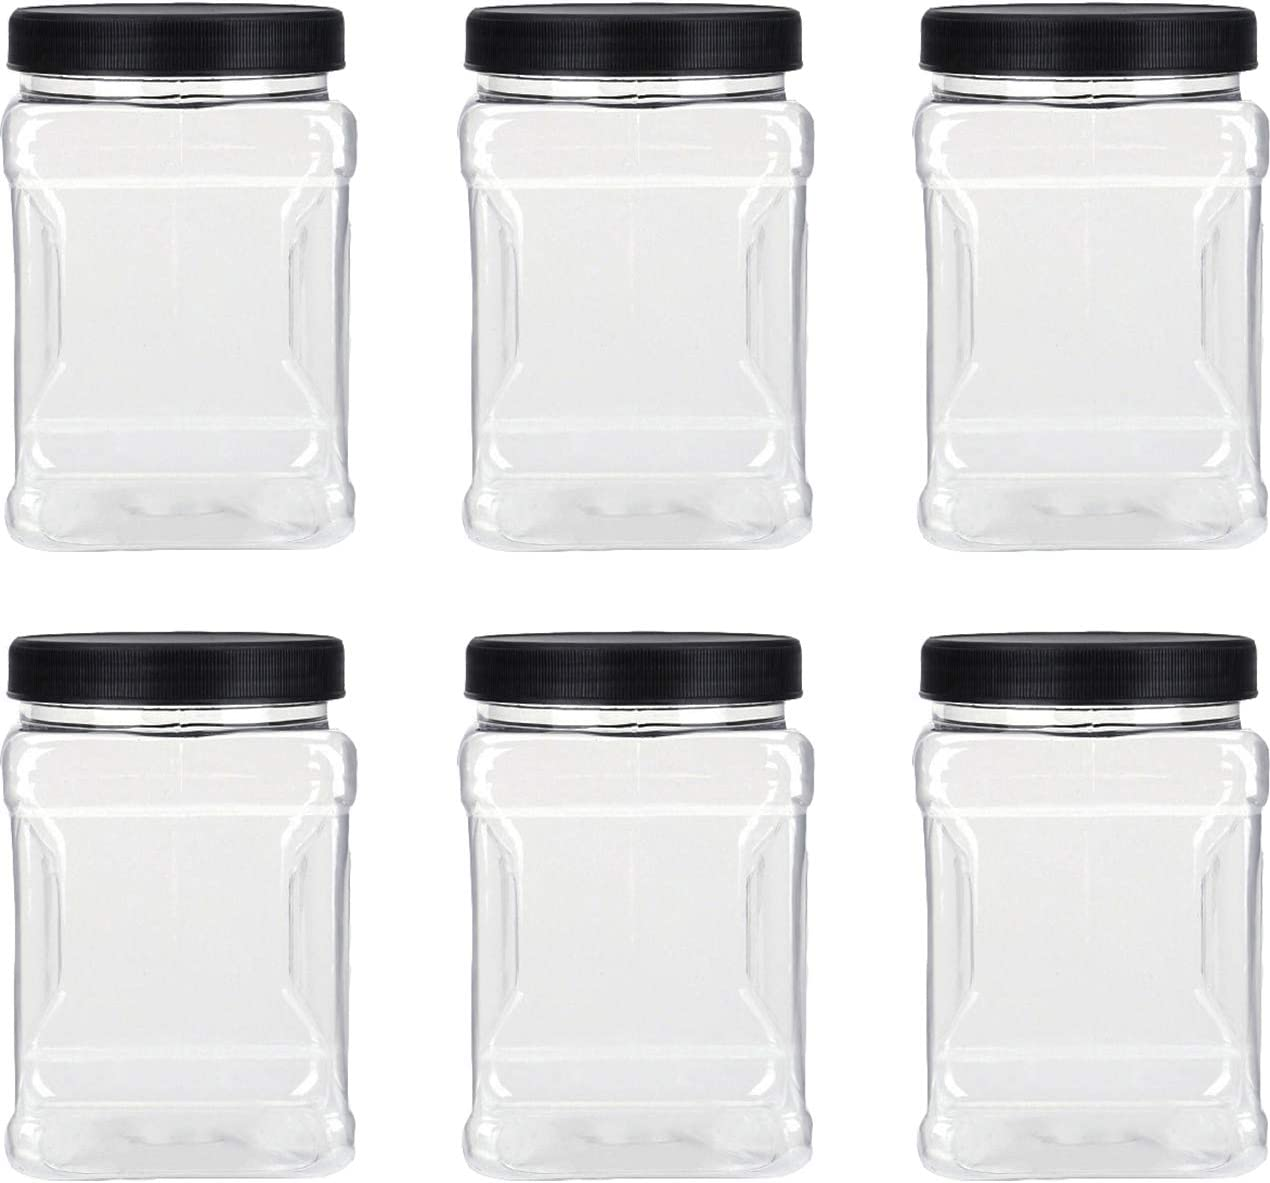 Lawei 6 Pack Clear Plastic Jars with Lids - 32 Oz Square Plastic Jars Containers with Easy Grip Handles Plastic Storage Jars for Dry Goods Cookies Candy and more…